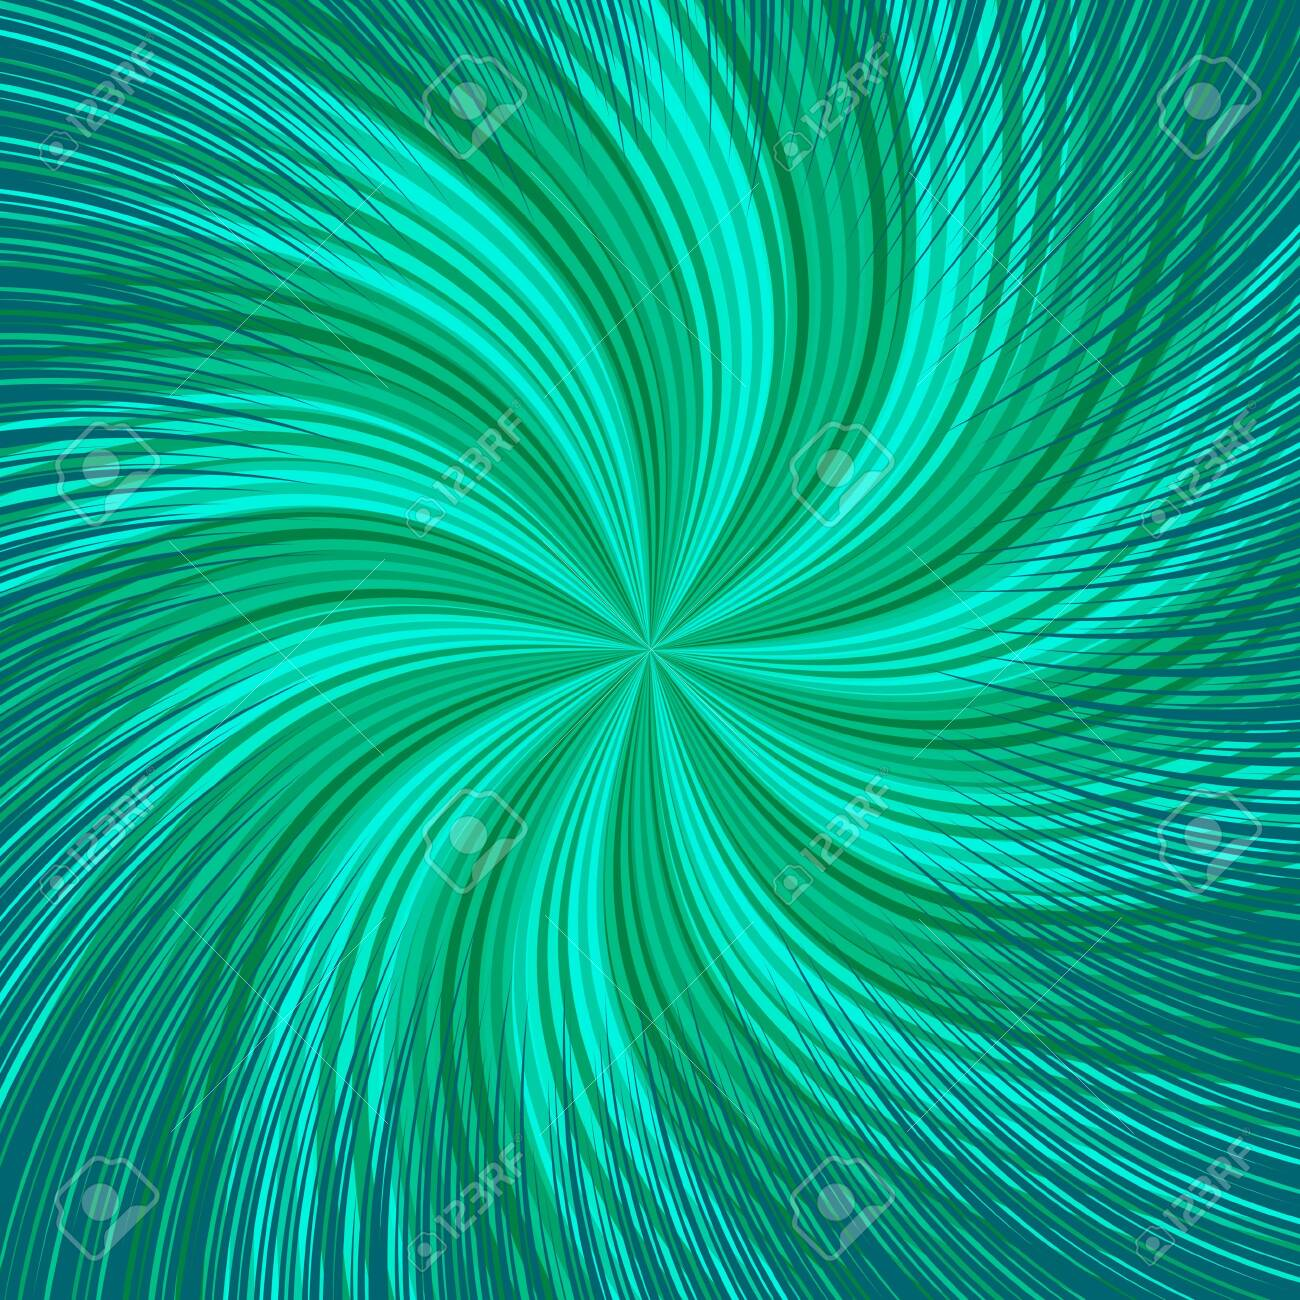 Comic abstract twisted background with green radial and rays effects. Vector illustration - 146093531